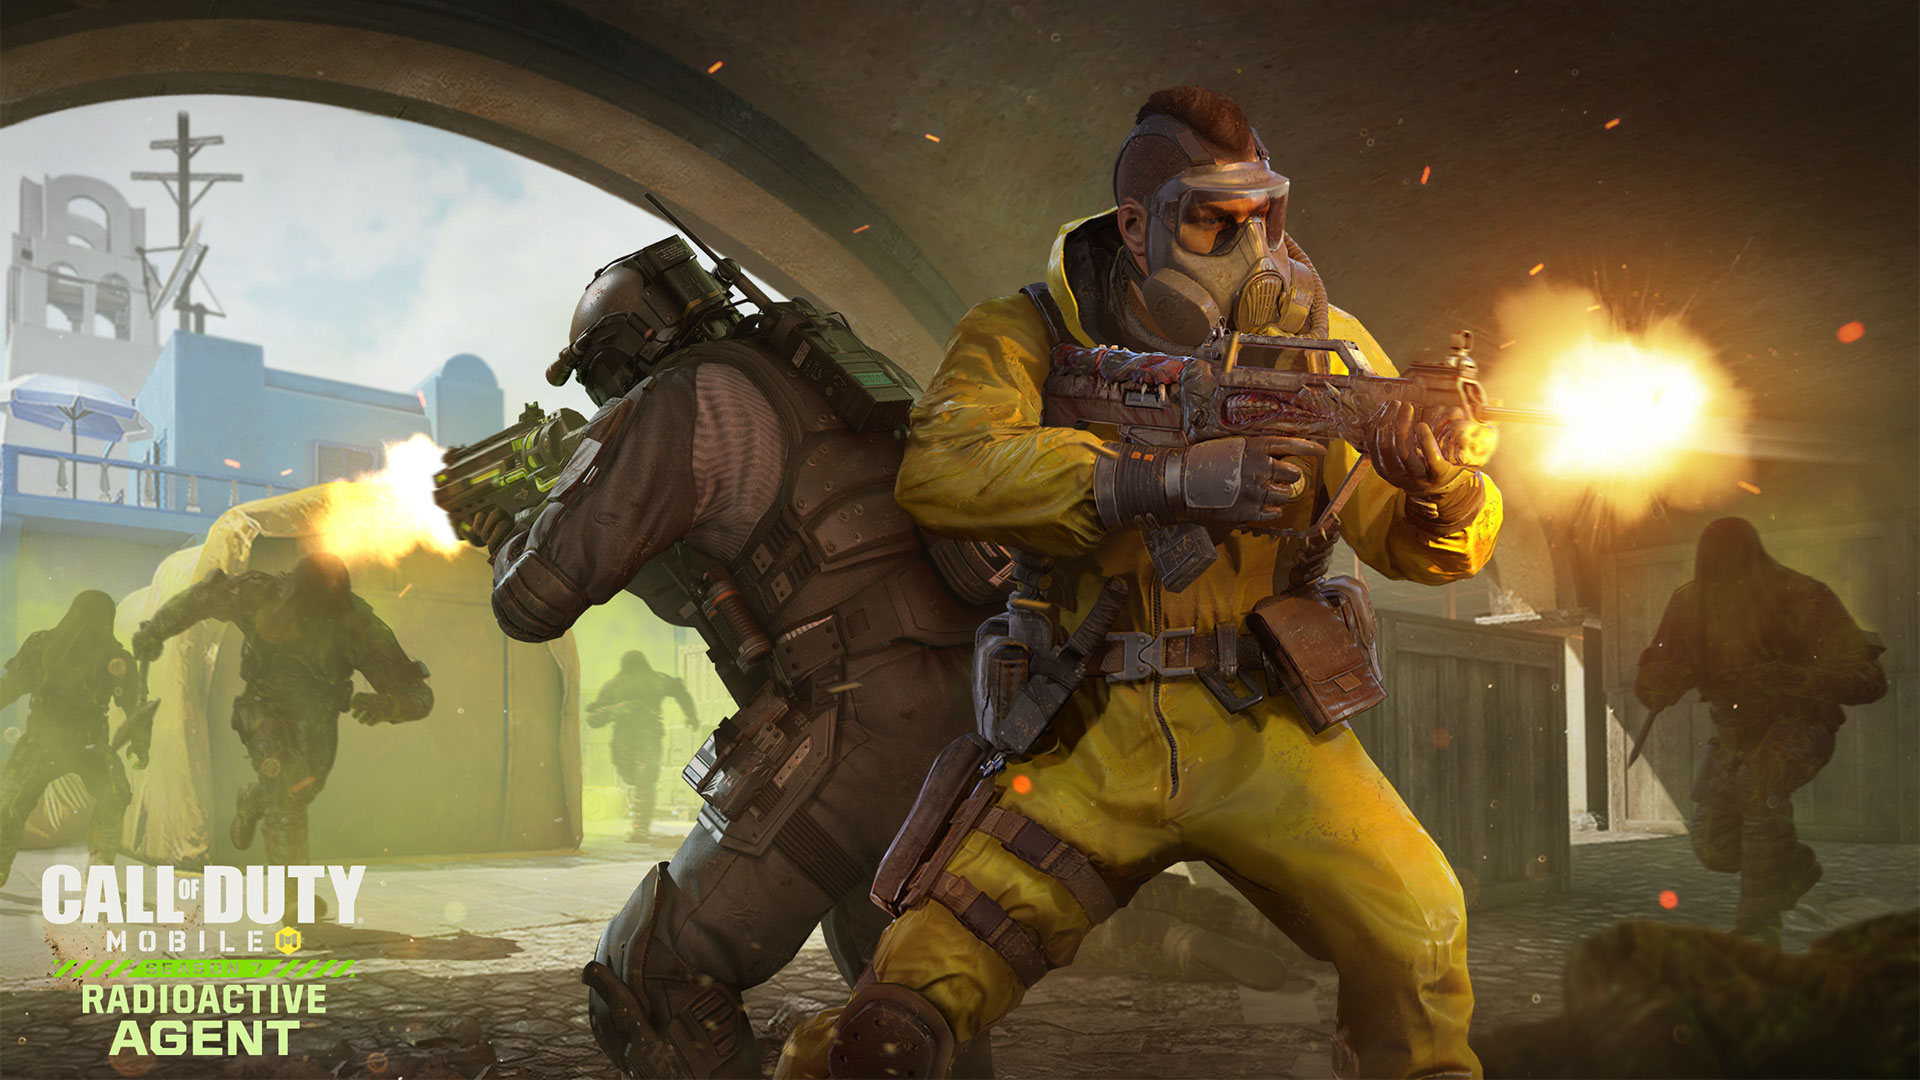 Call Of Duty Mobile The Survivor S Guide To Radiated Sector And